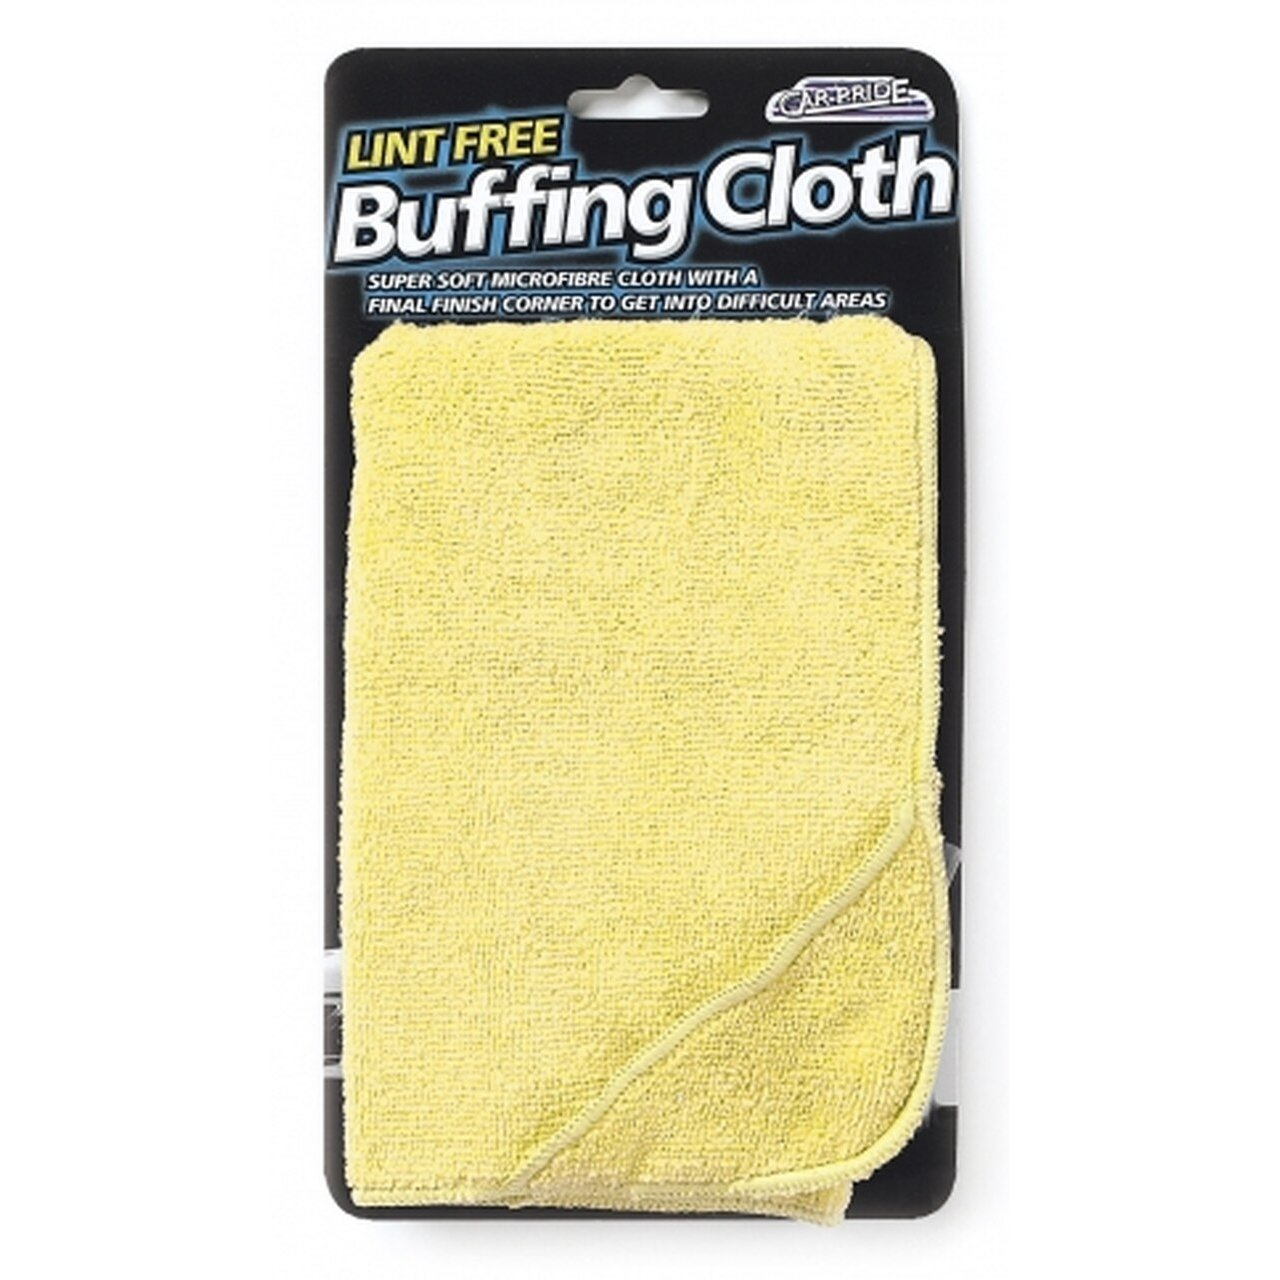 Lint Free Buffing Cloth